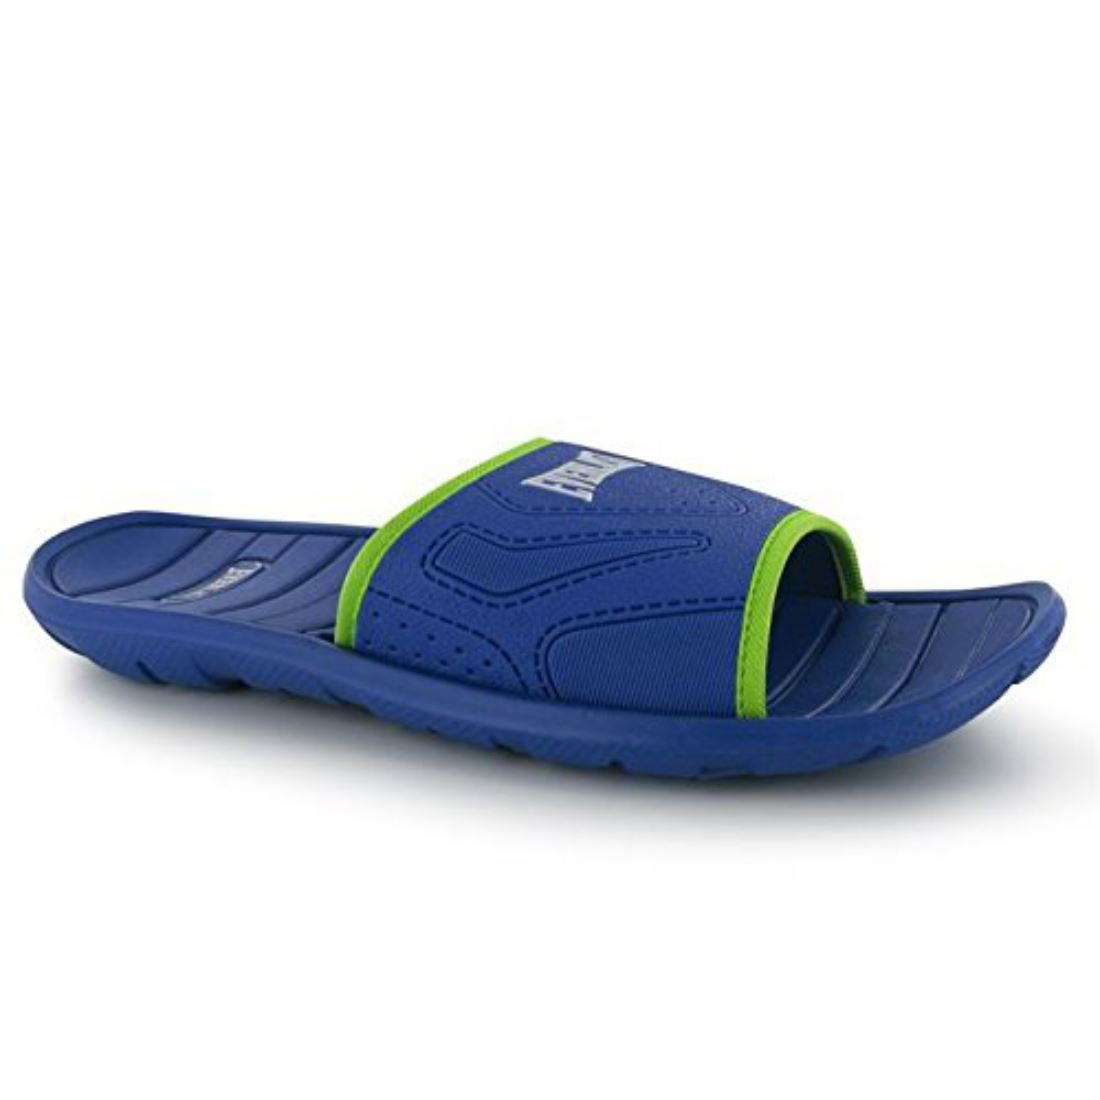 Everlast Mens Pool Shoes Water Swimming Shower Beach Sport Sandals Ebay